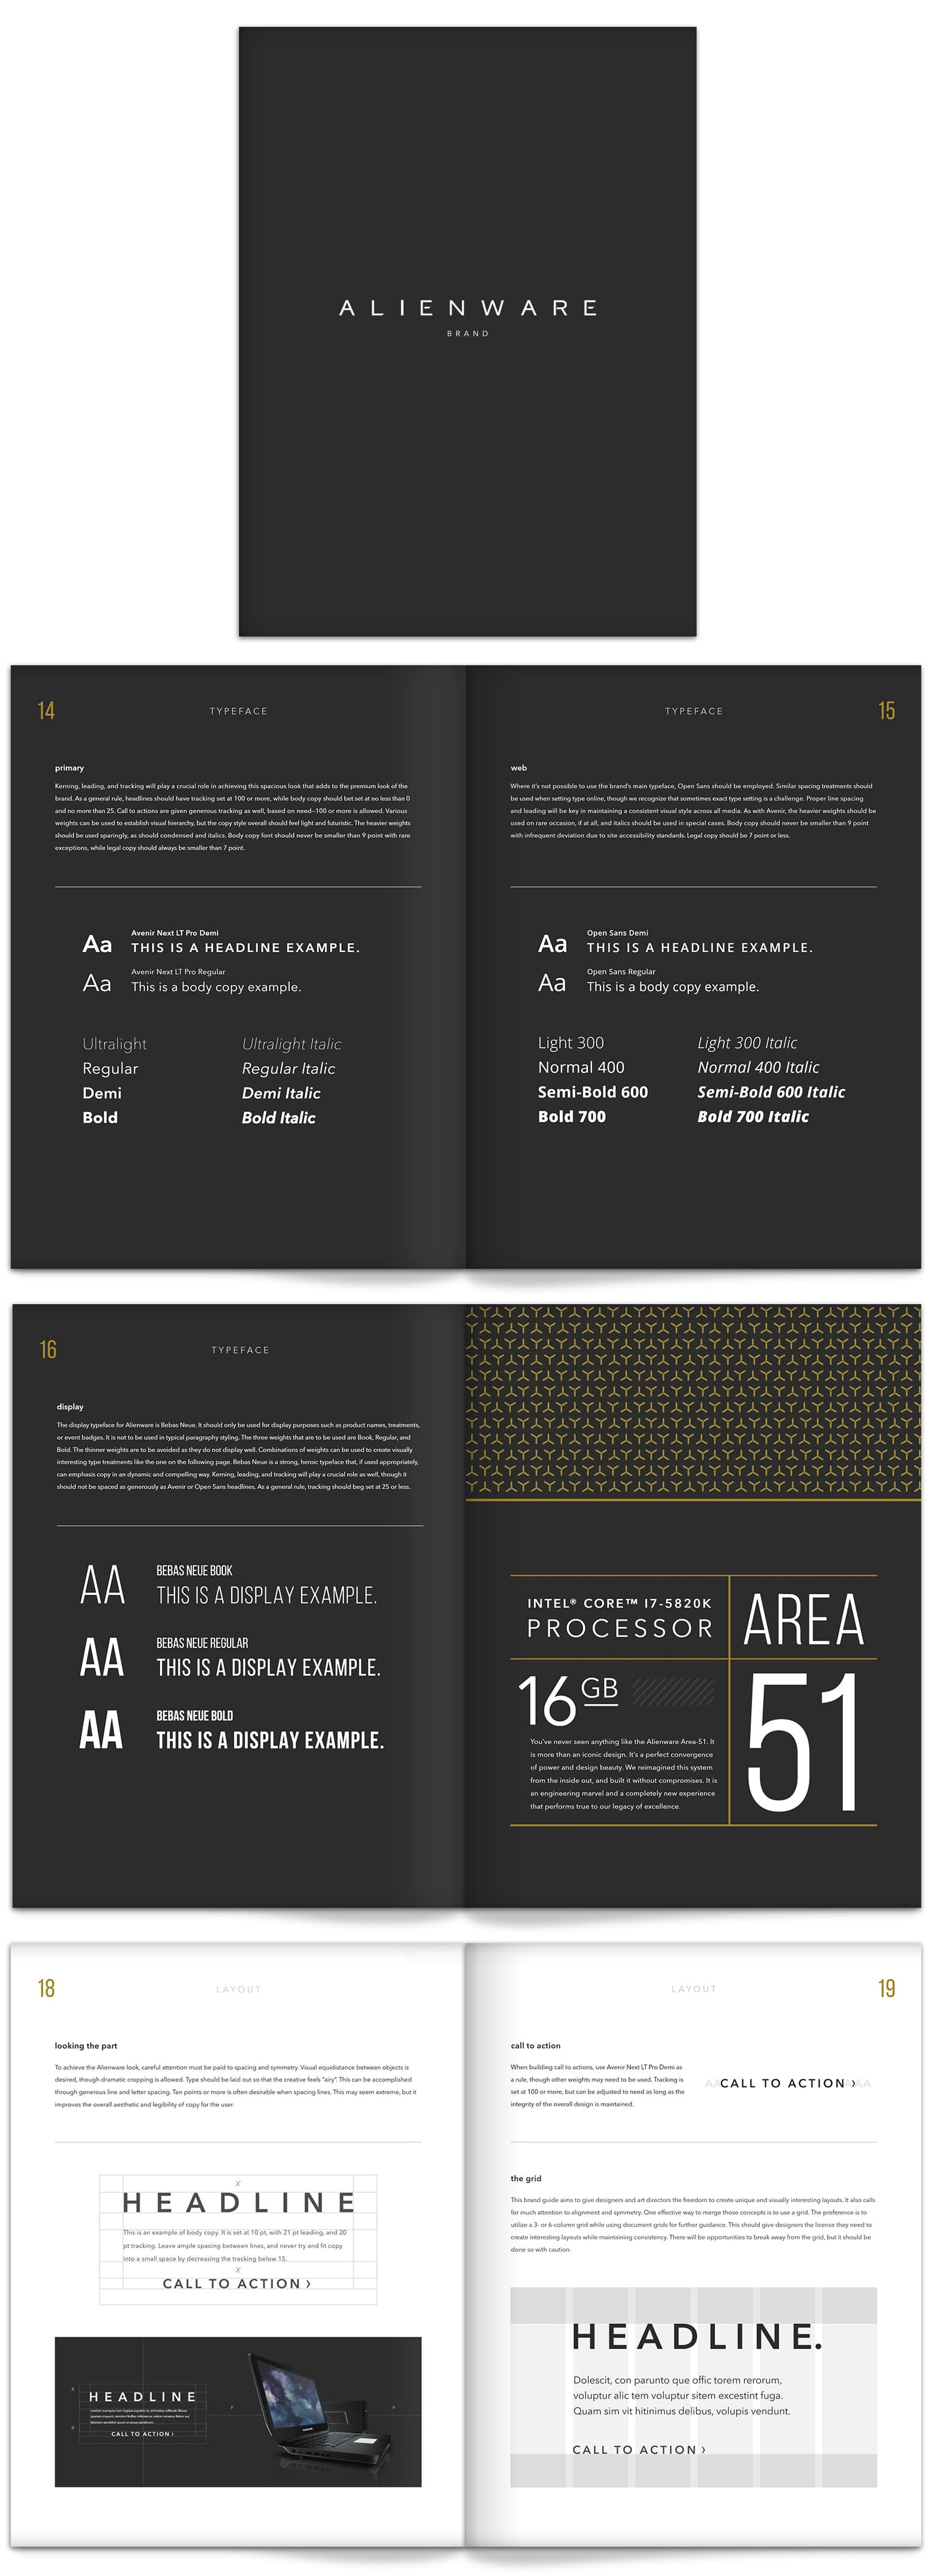 Typography in Brand Guides: How 17 Brands Use Fonts - BMB